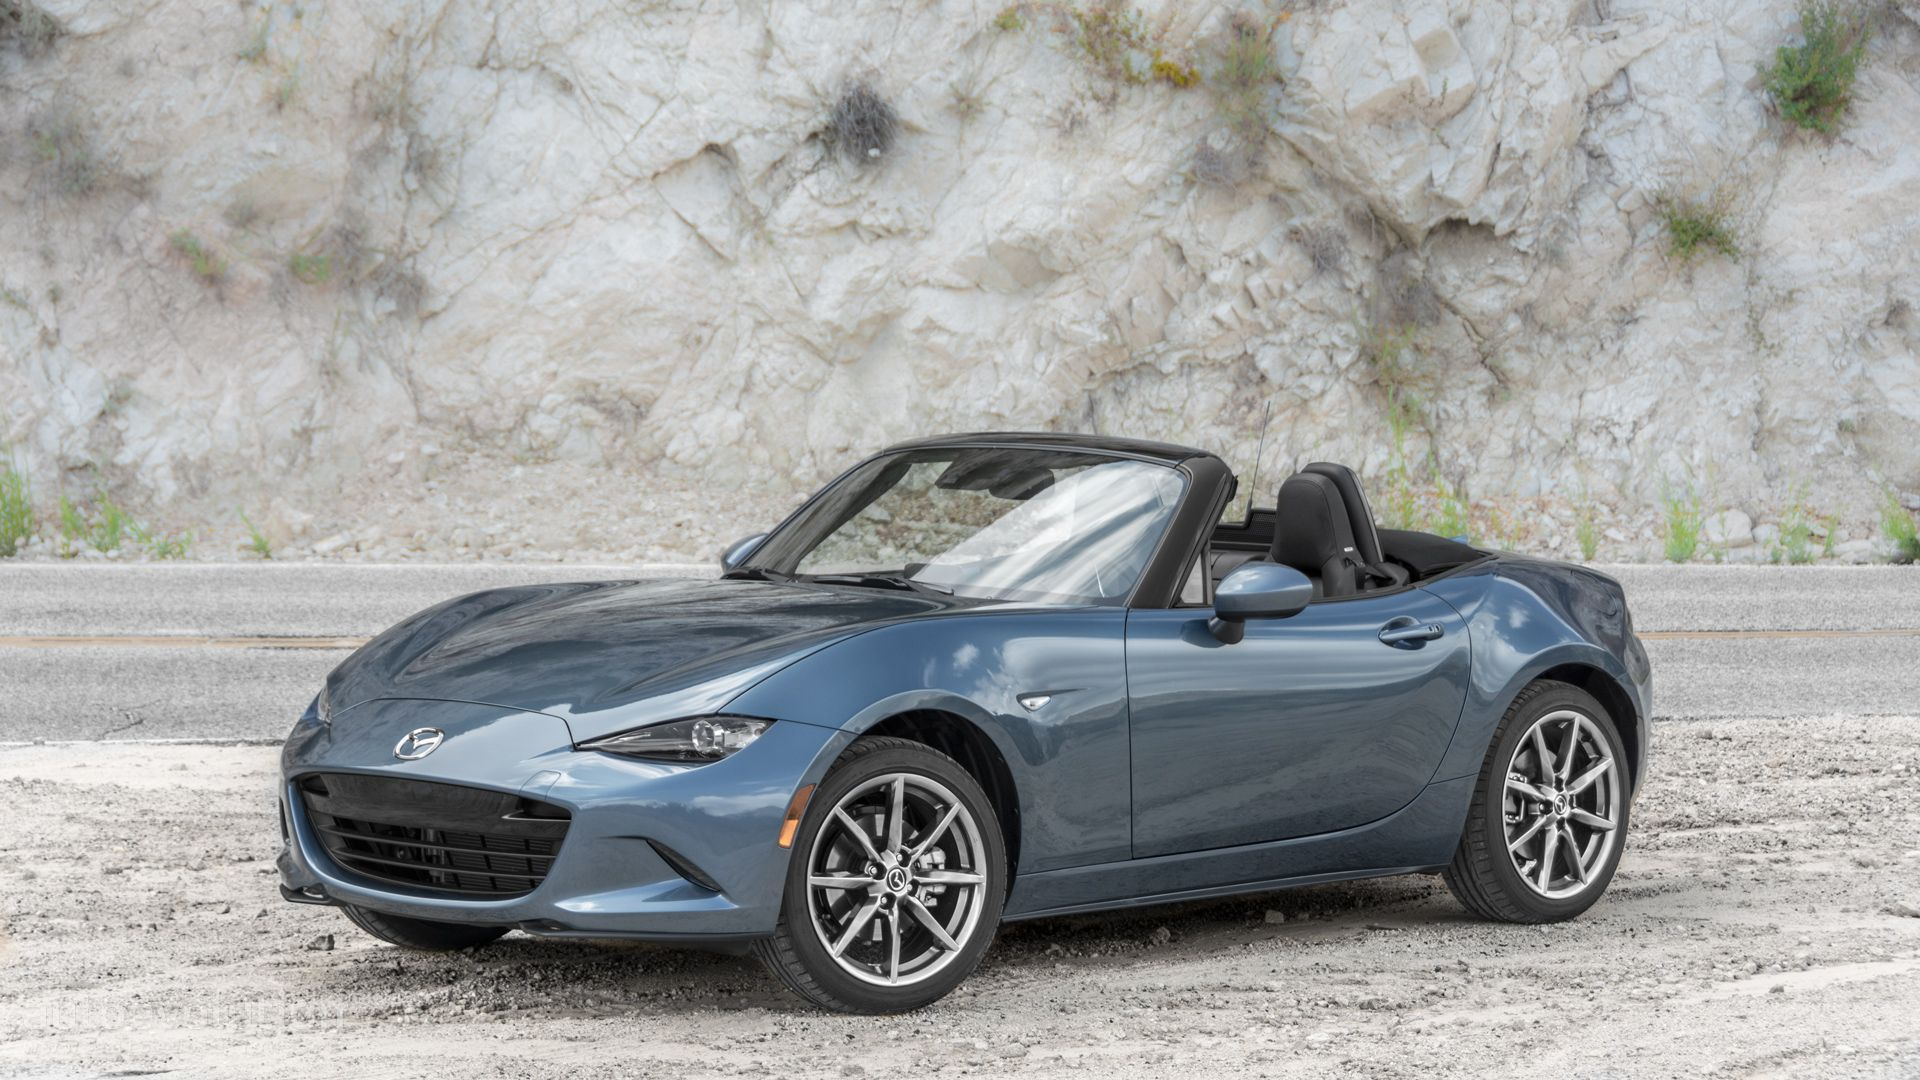 2016 mazda miata mx 5 tested back to basics autoevolution. Black Bedroom Furniture Sets. Home Design Ideas